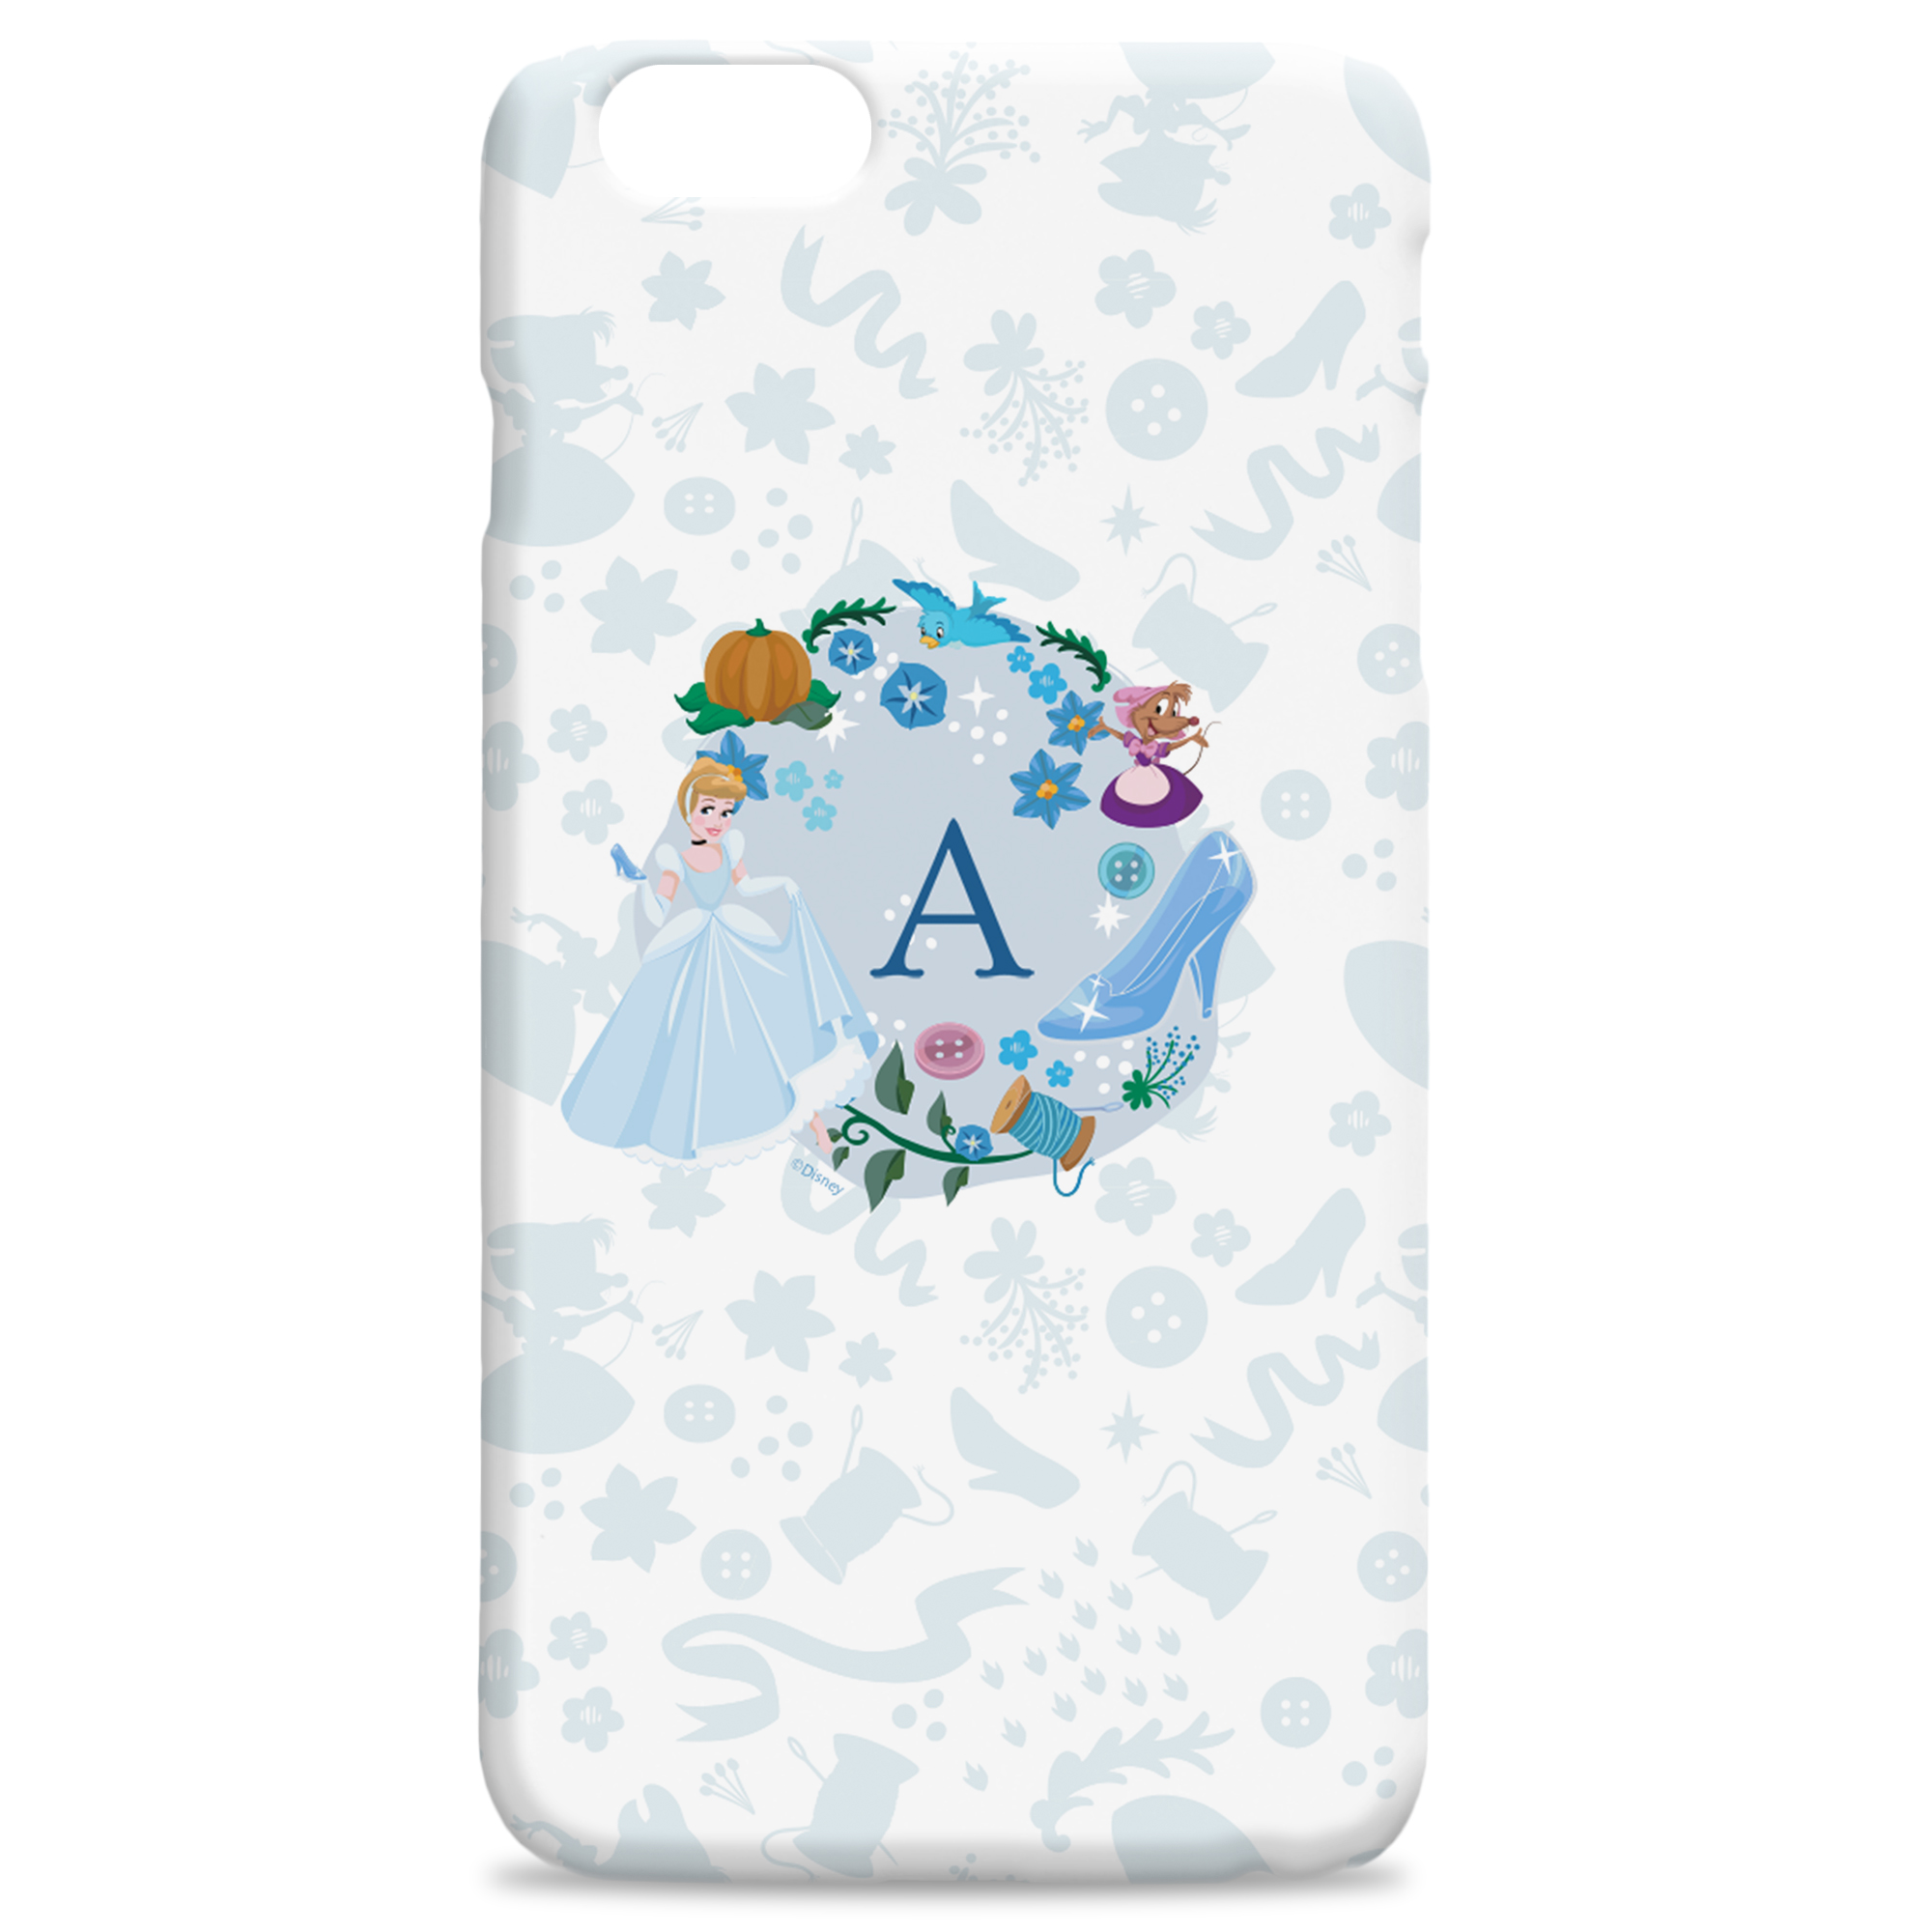 Disney Princess Cinderella Initial Phone Case